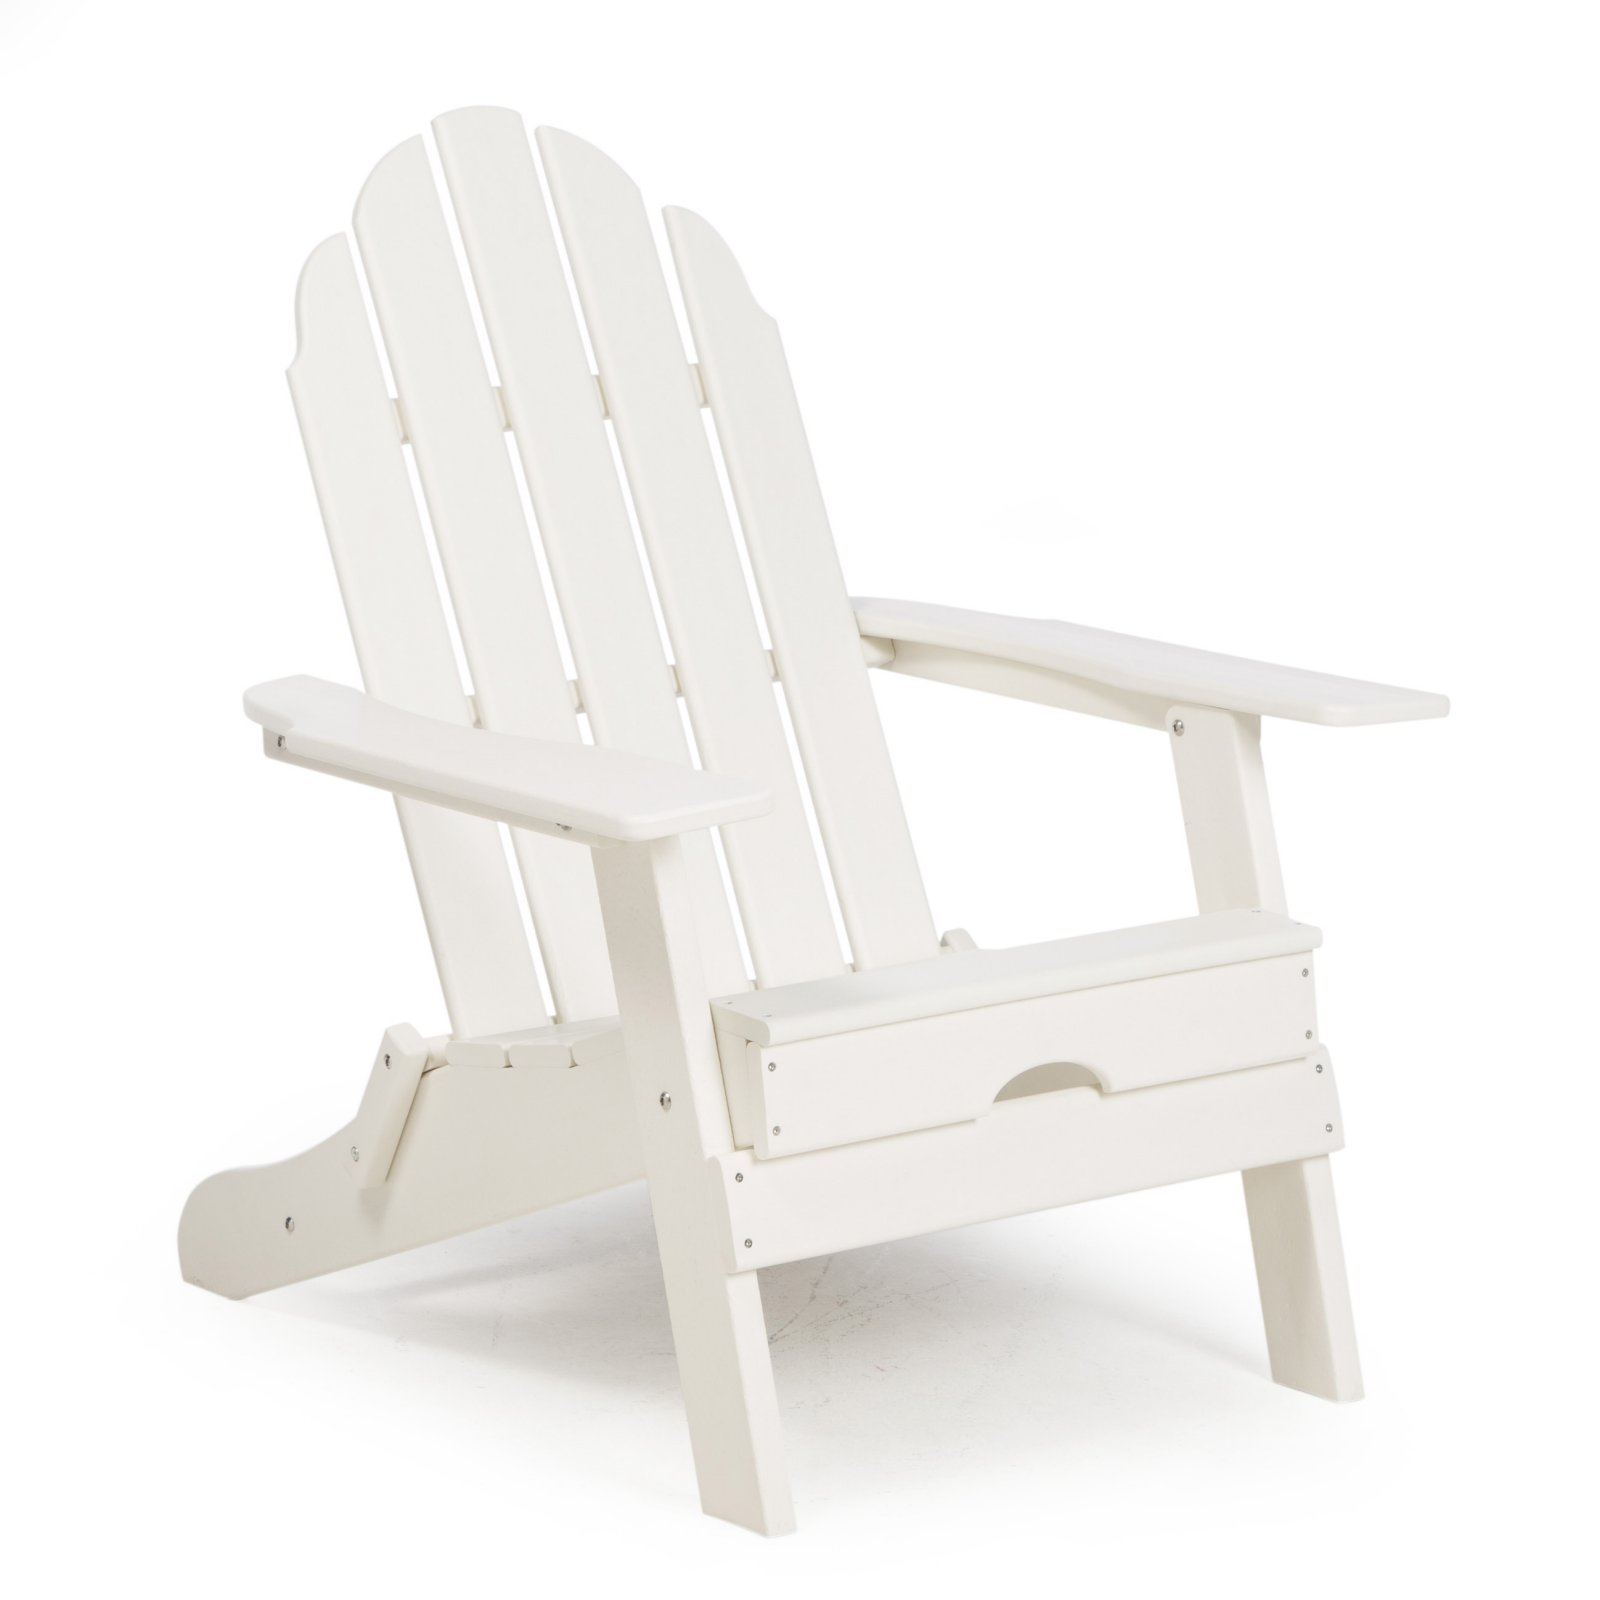 Belham Living Belmore Recycled Plastic Folding Adirondack Chair by